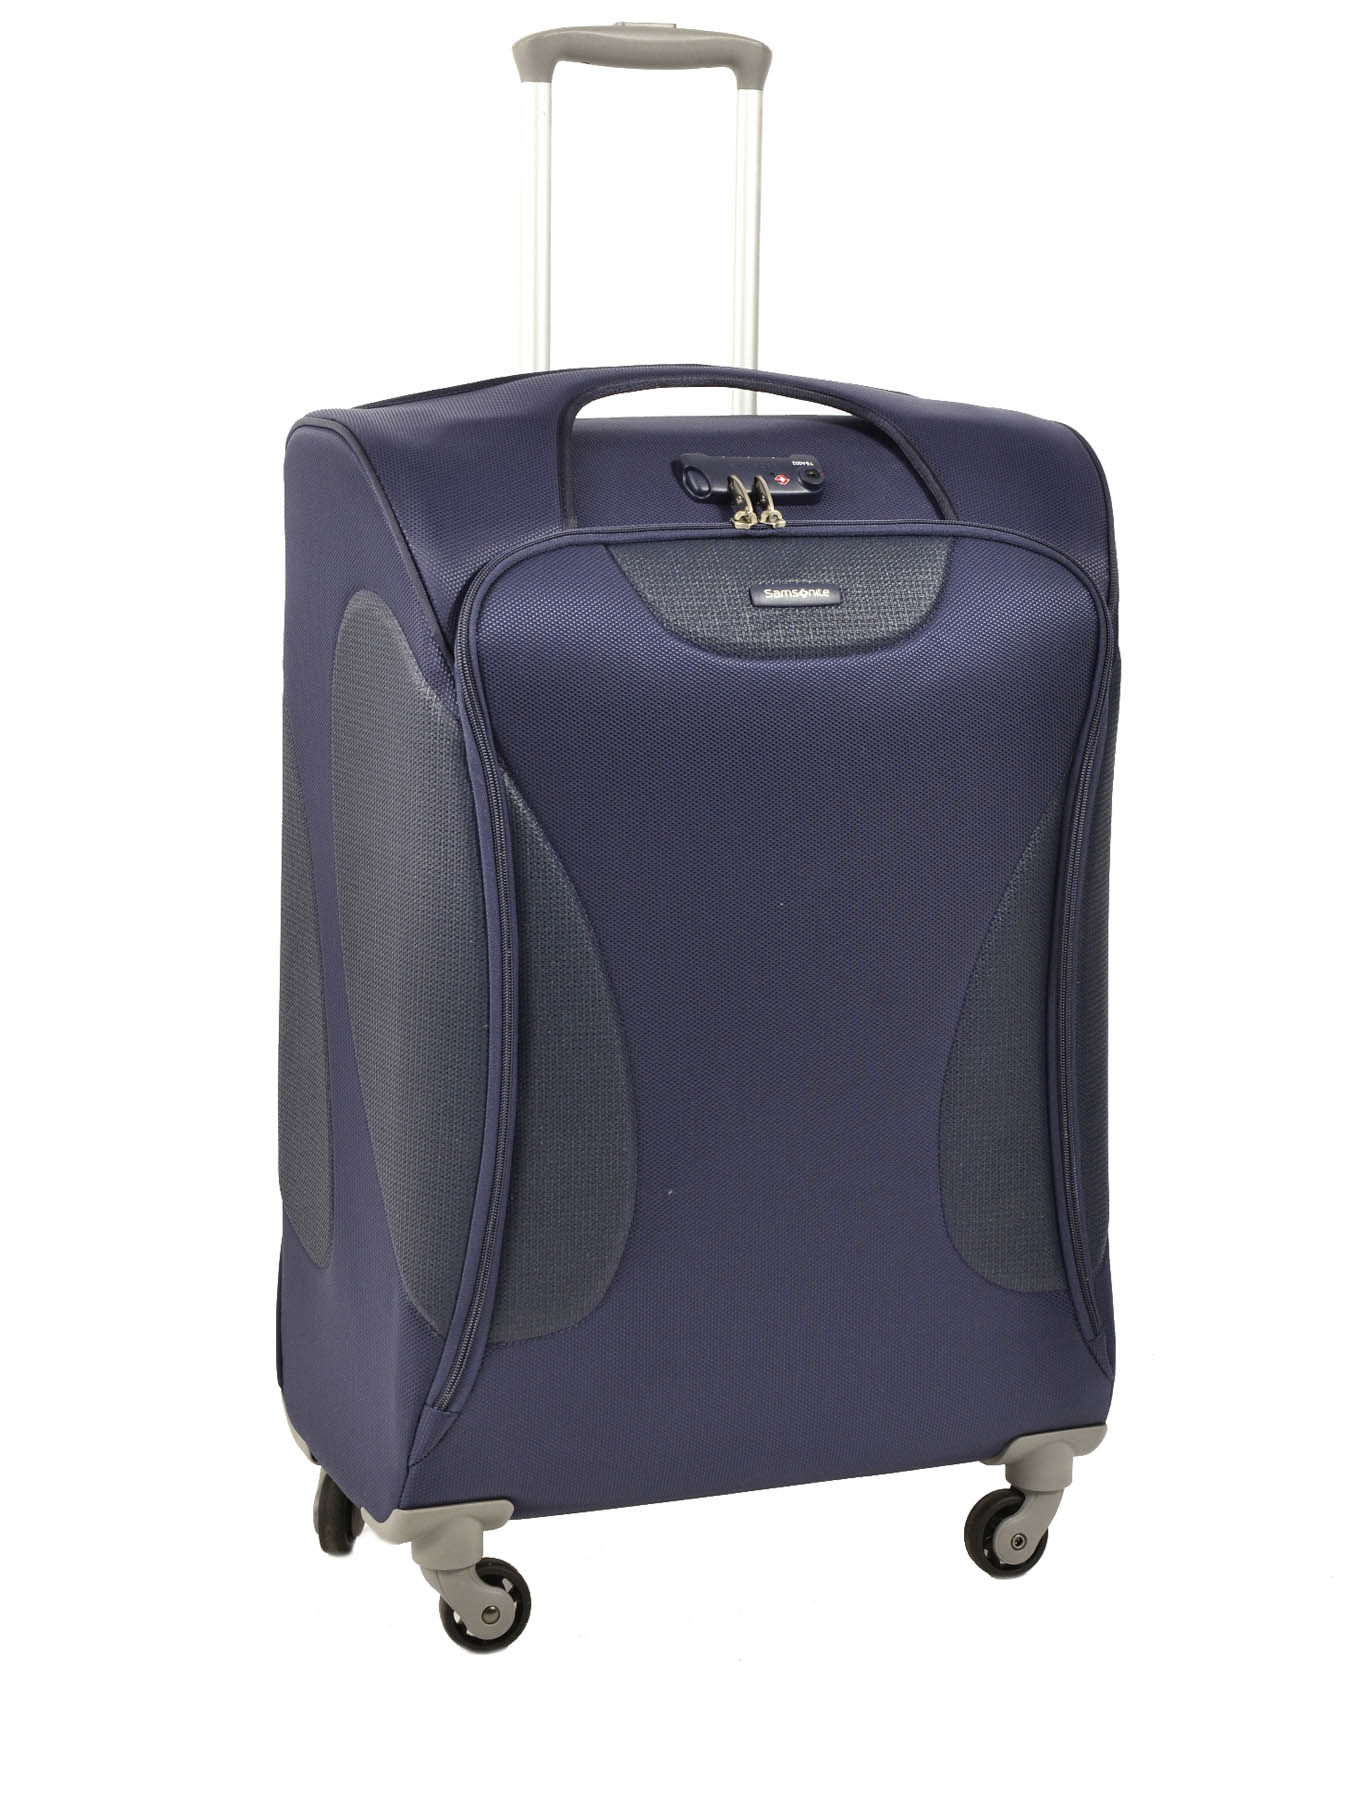 valise 4 roues souple samsonite bleu panayio 42u004. Black Bedroom Furniture Sets. Home Design Ideas